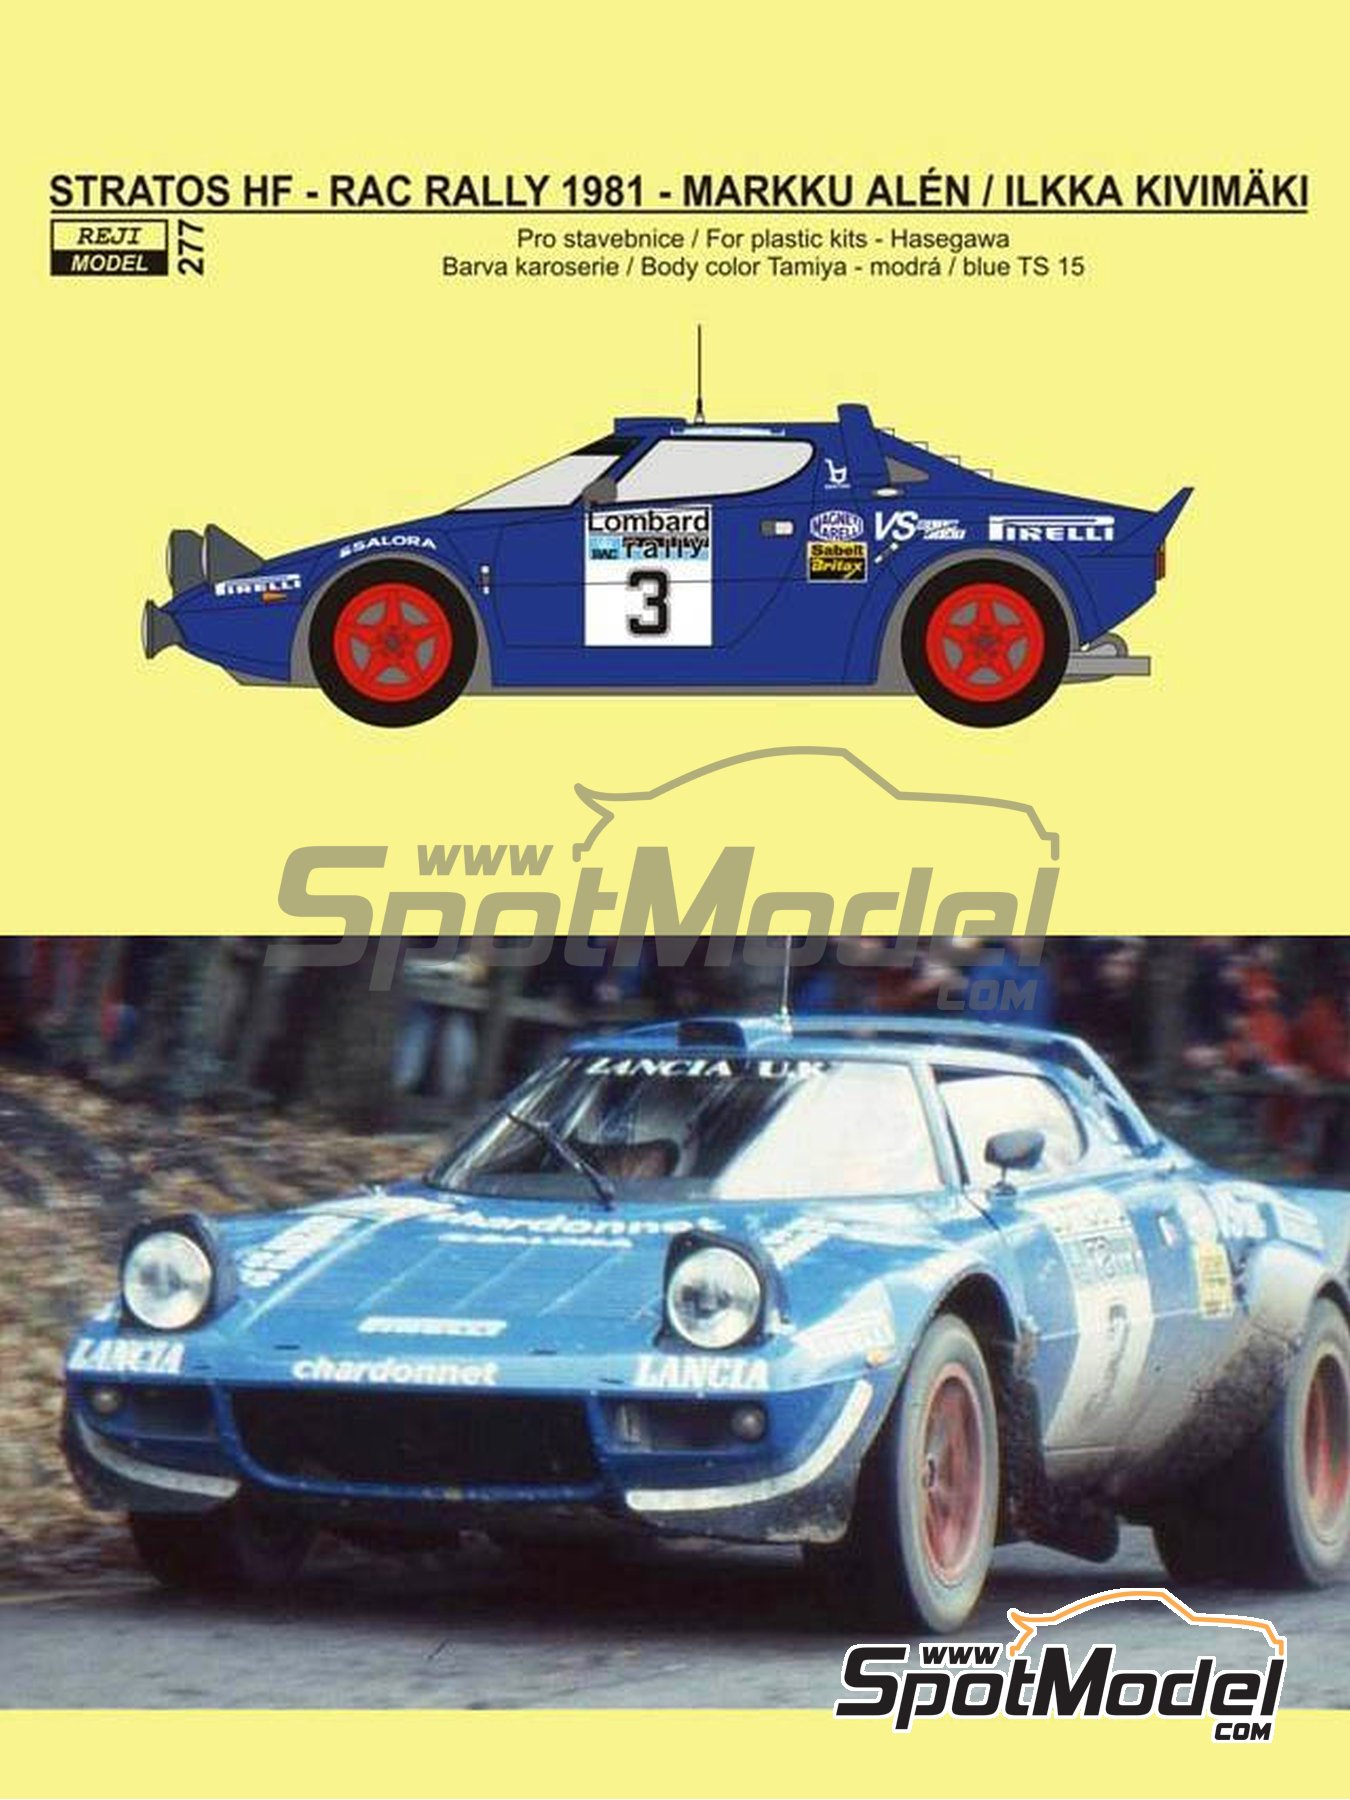 Lancia Stratos HF - RAC Rally 1981 | Marking / livery in 1/24 scale manufactured by Reji Model (ref. REJI-277) image